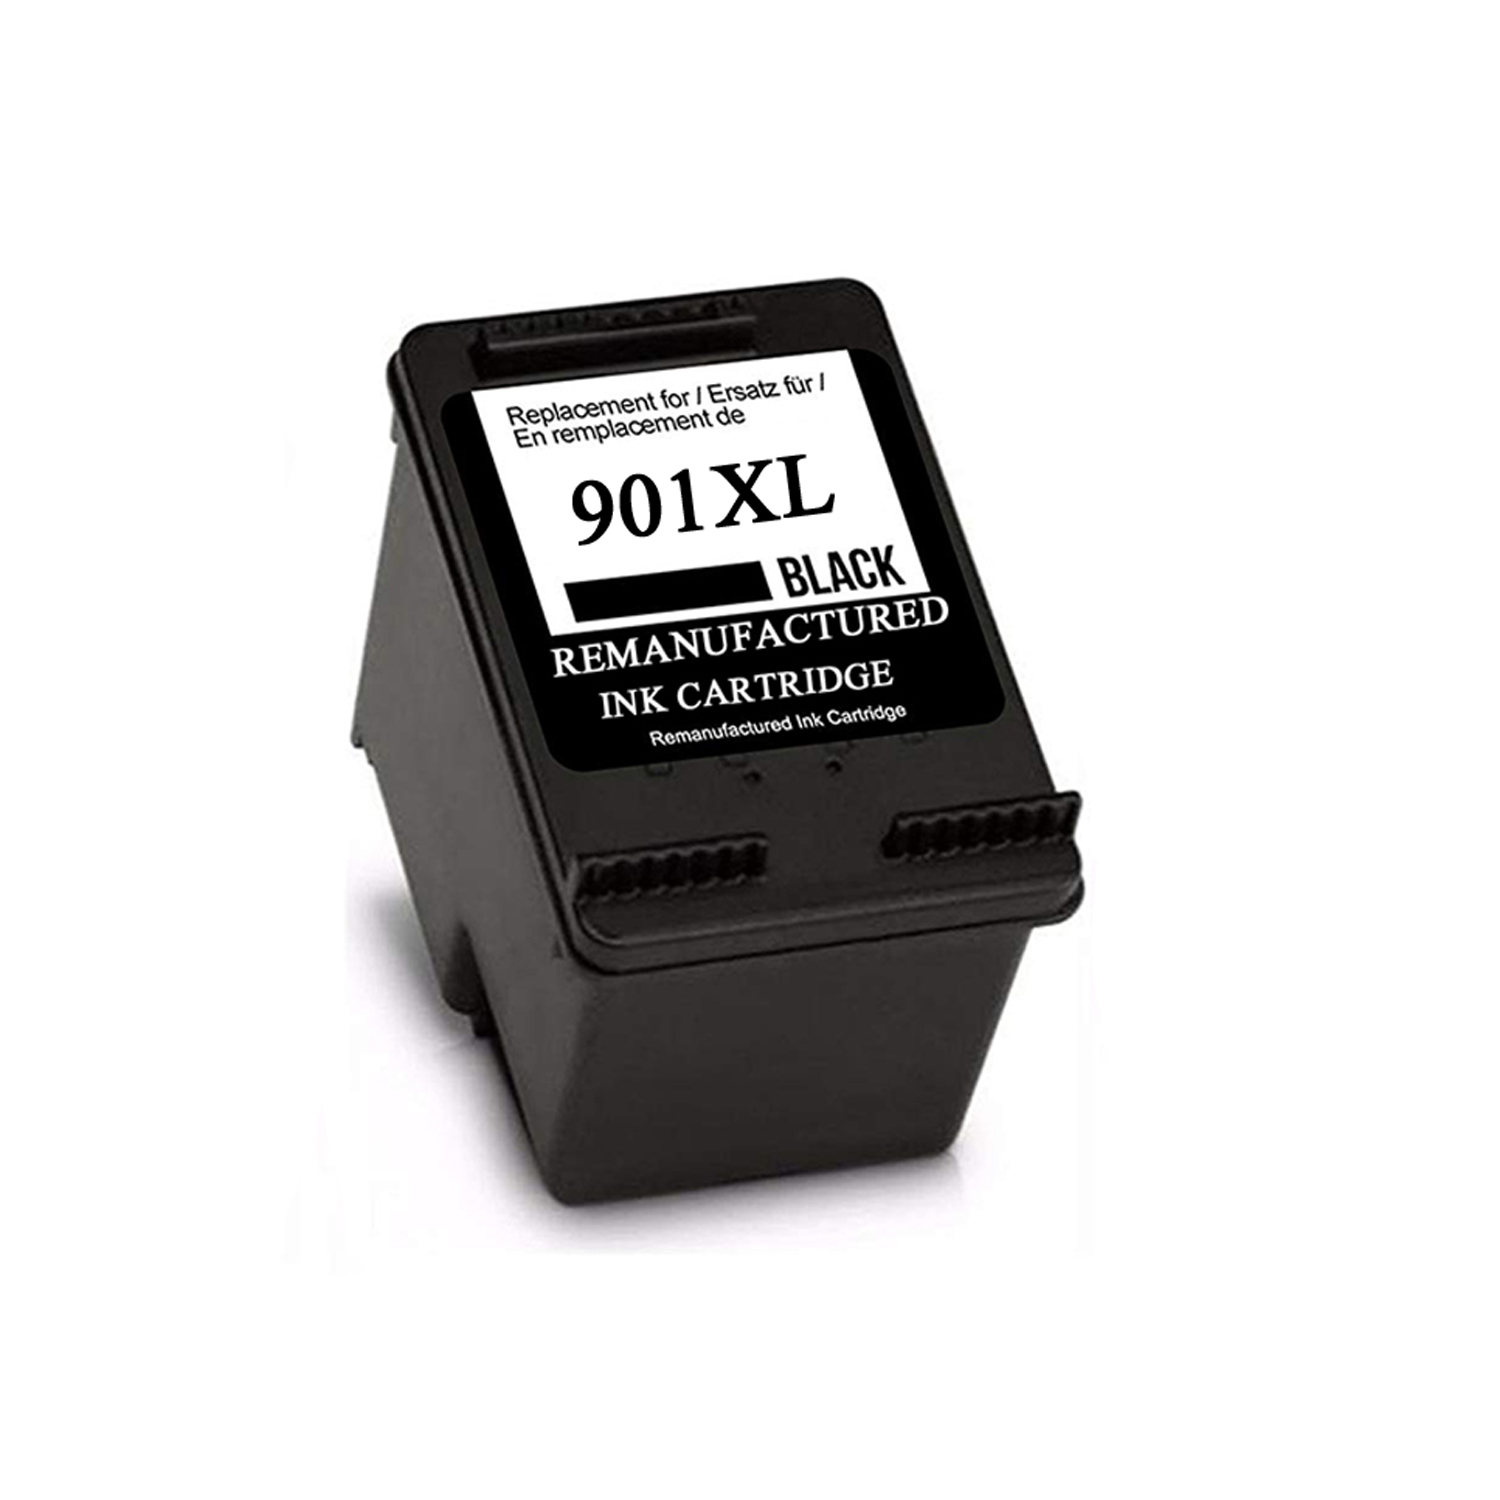 901XL Black Refilled Ink Cartridge Replacement for <font><b>HP</b></font> <font><b>901</b></font> <font><b>XL</b></font> 901XL for <font><b>HP</b></font> Officejet 4500 J4500 J4540 J4550 J4580 J4640 J4680c image